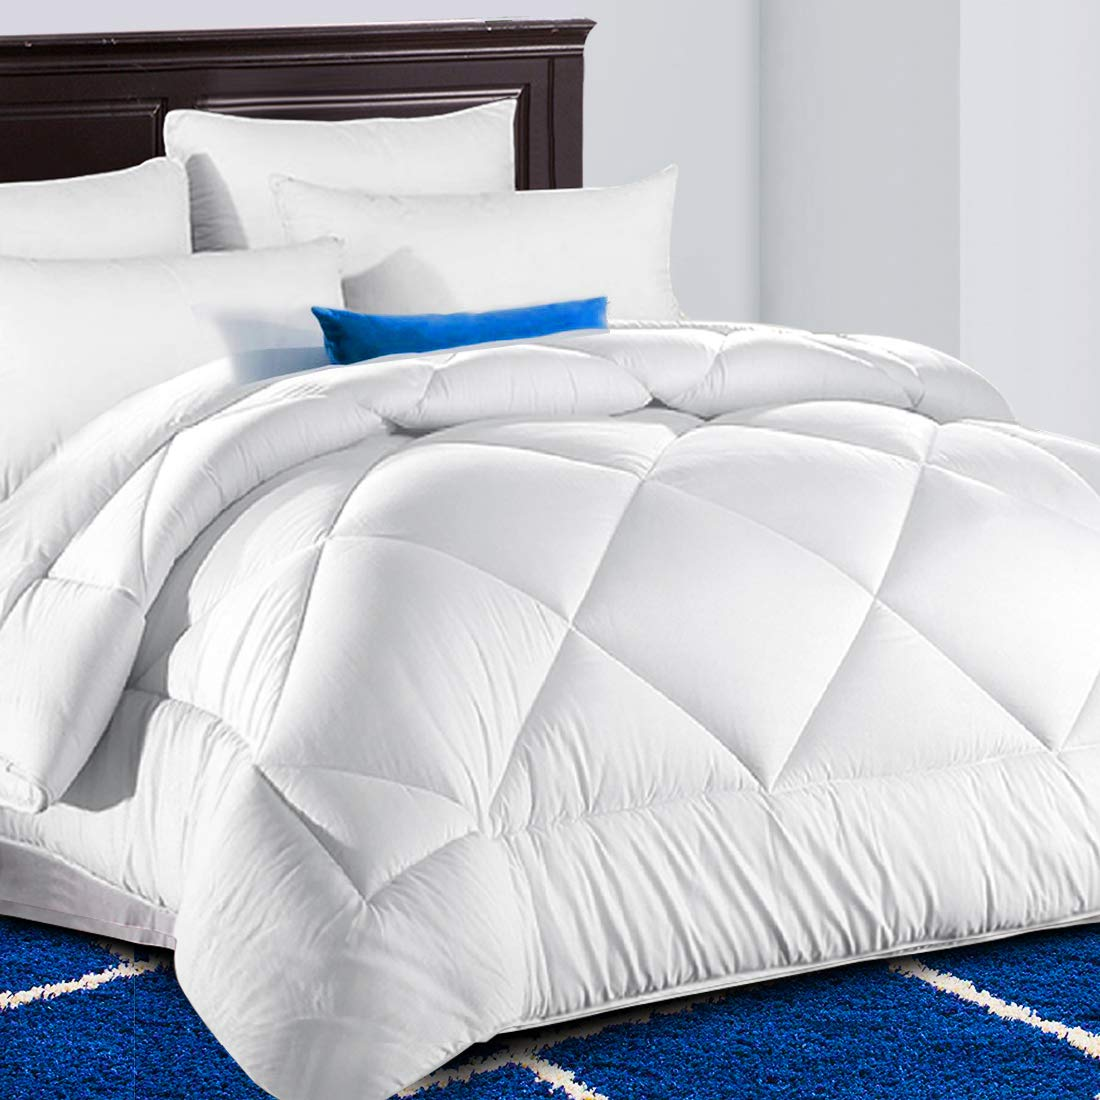 TEKAMON All Season Cal King Comforter Summer Cooling Soft Quilted Down Alternative Duvet Insert with Corner Tabs, Luxury Fluffy Reversible Hotel Collection for All Season,White,104 x 96 inches